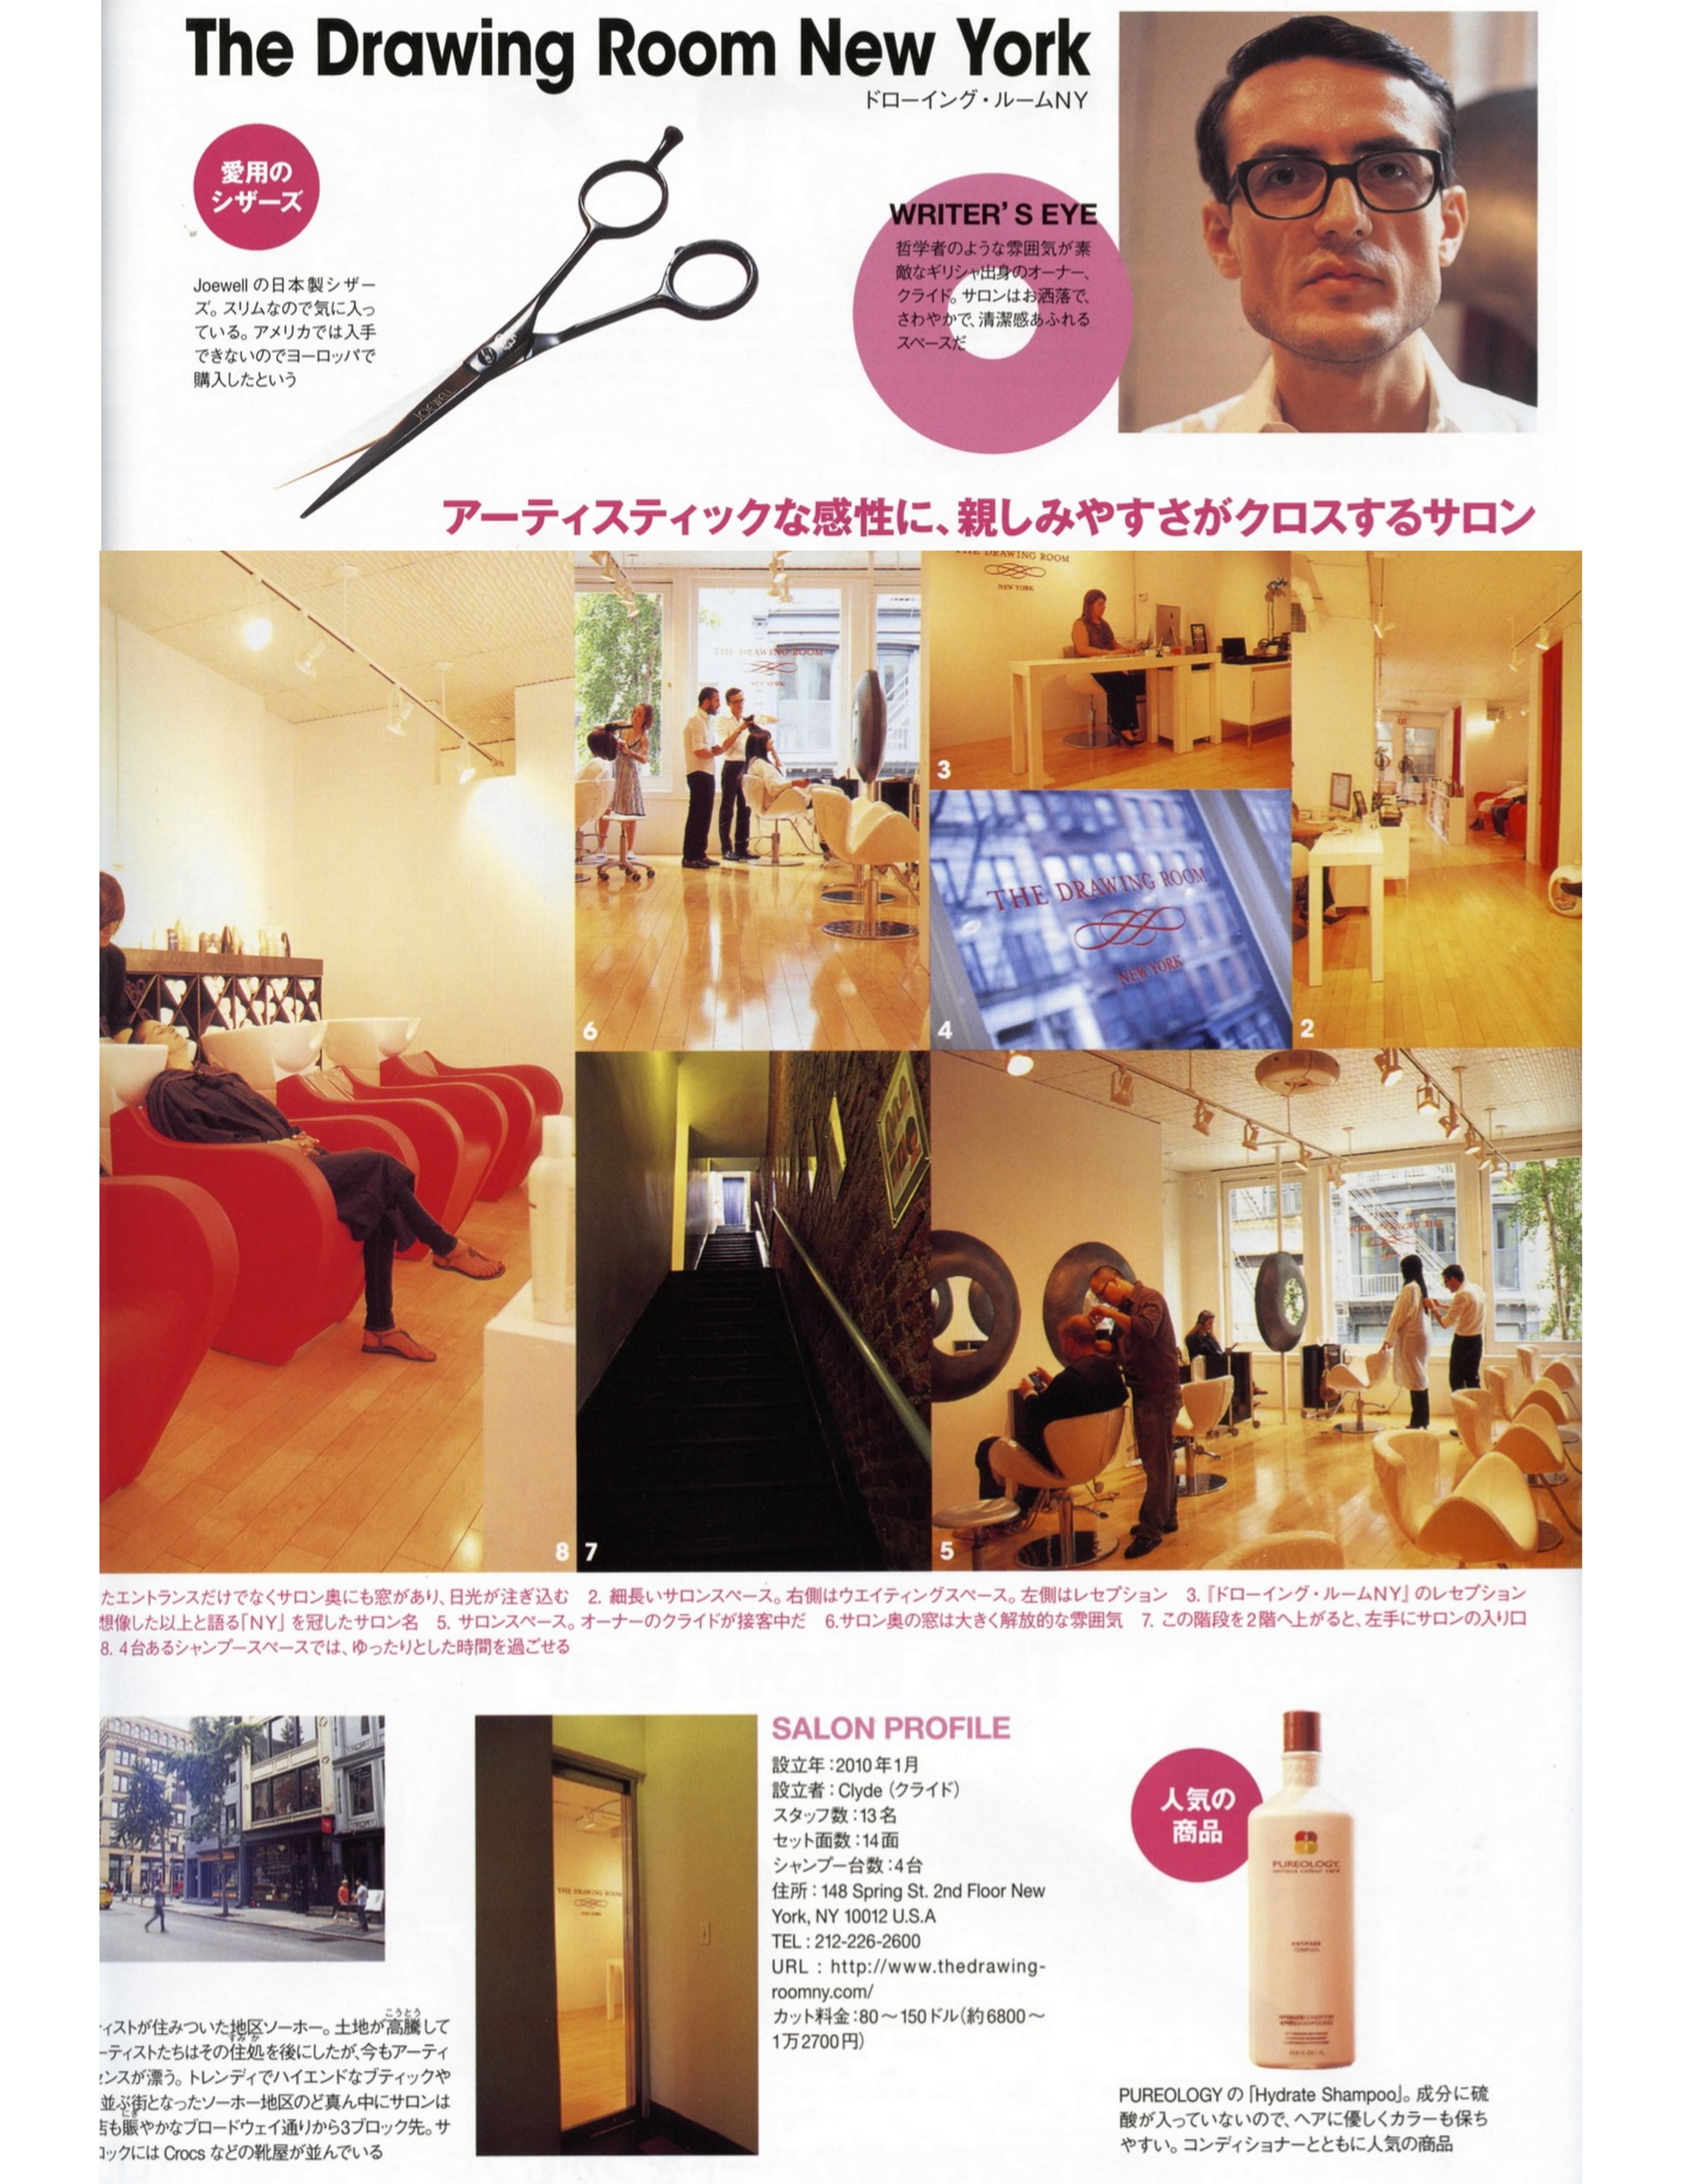 Drawing Room New York Feature article clipping